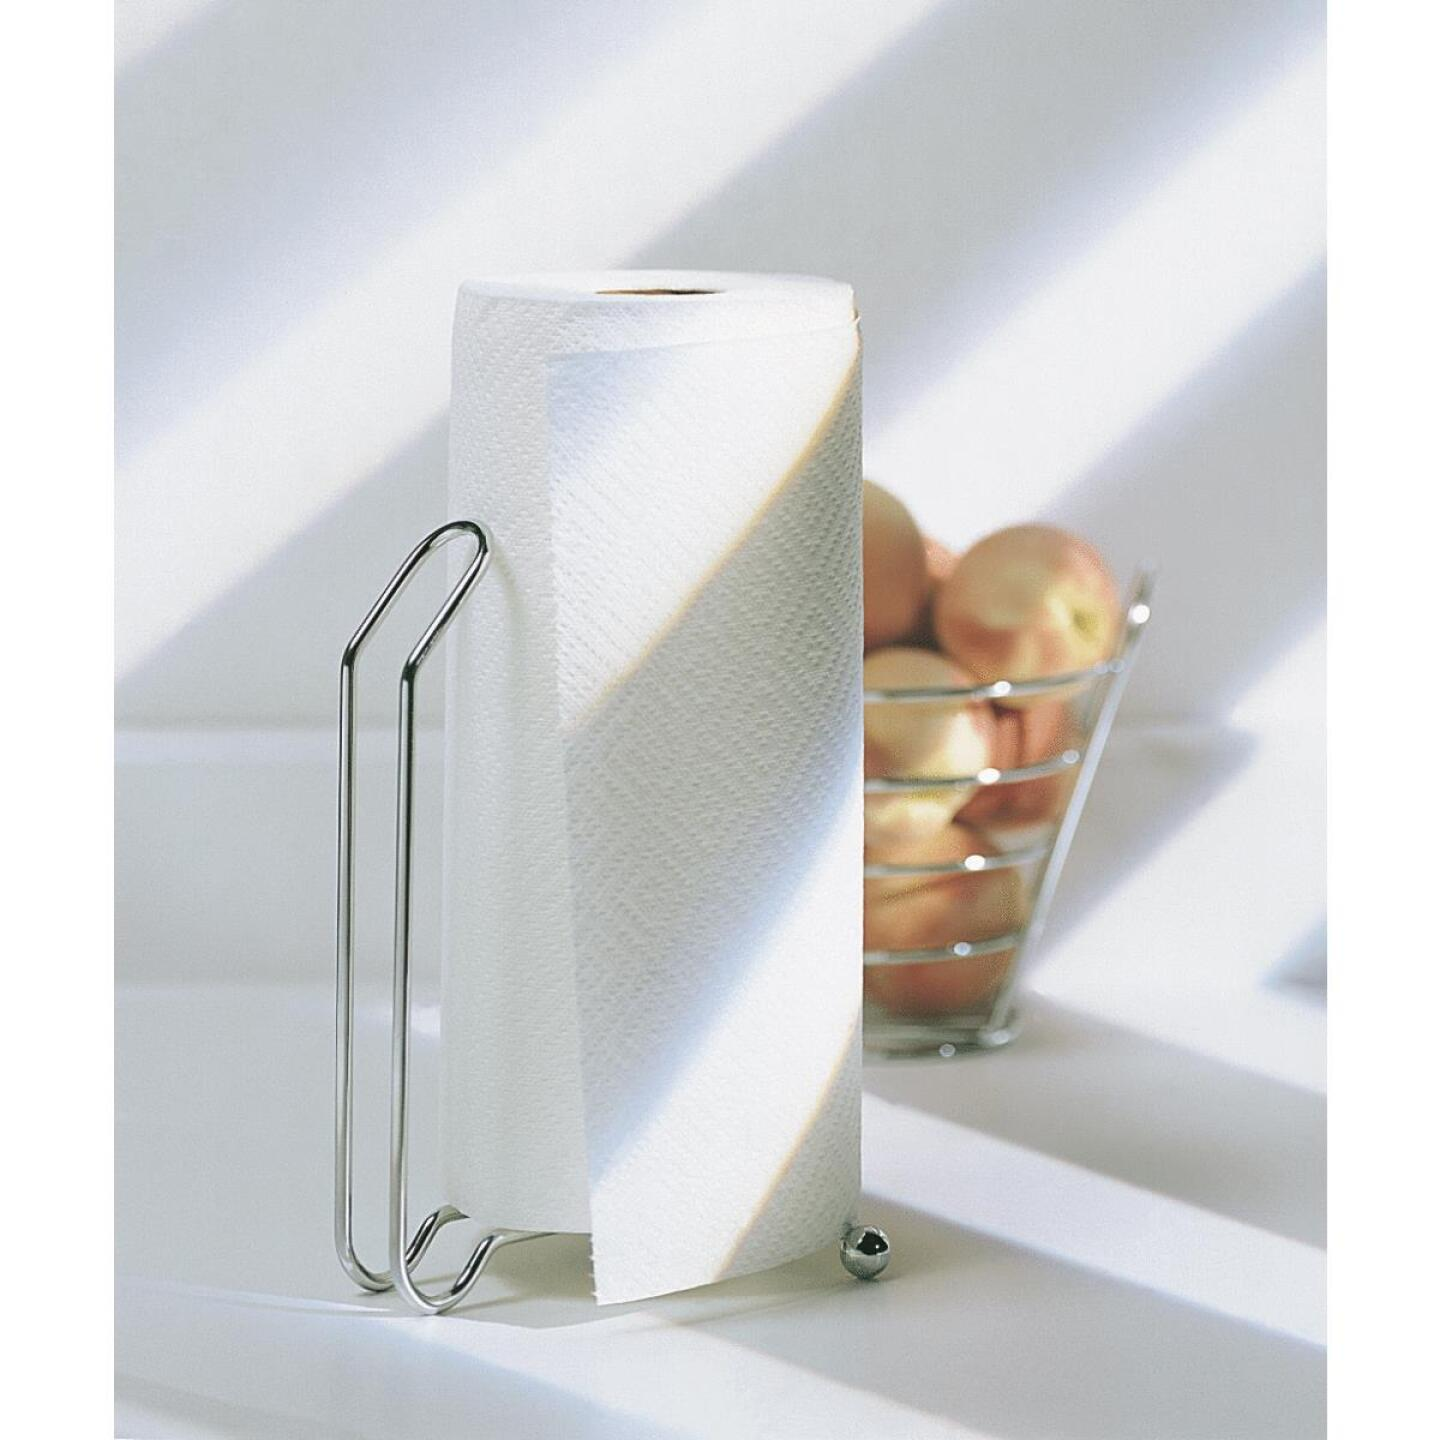 InterDesign Aria Paper Towel Holder Stand Image 2